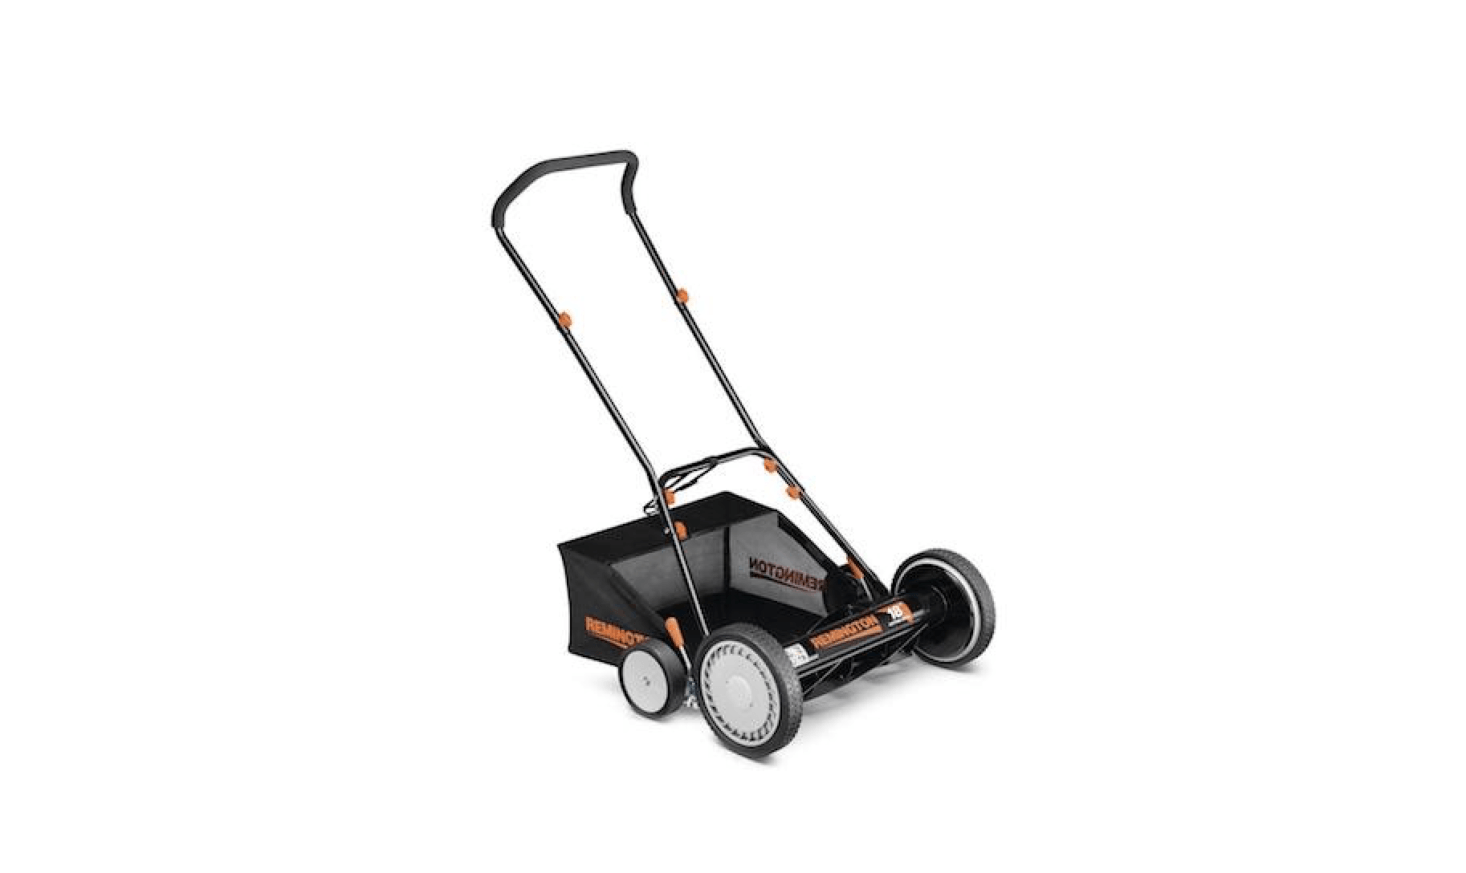 A Manual Walk Behind Non-Electric Reel Mower with an attached bag has an ergonomic handle and can adjust to different heights; $96. at Home Depot.